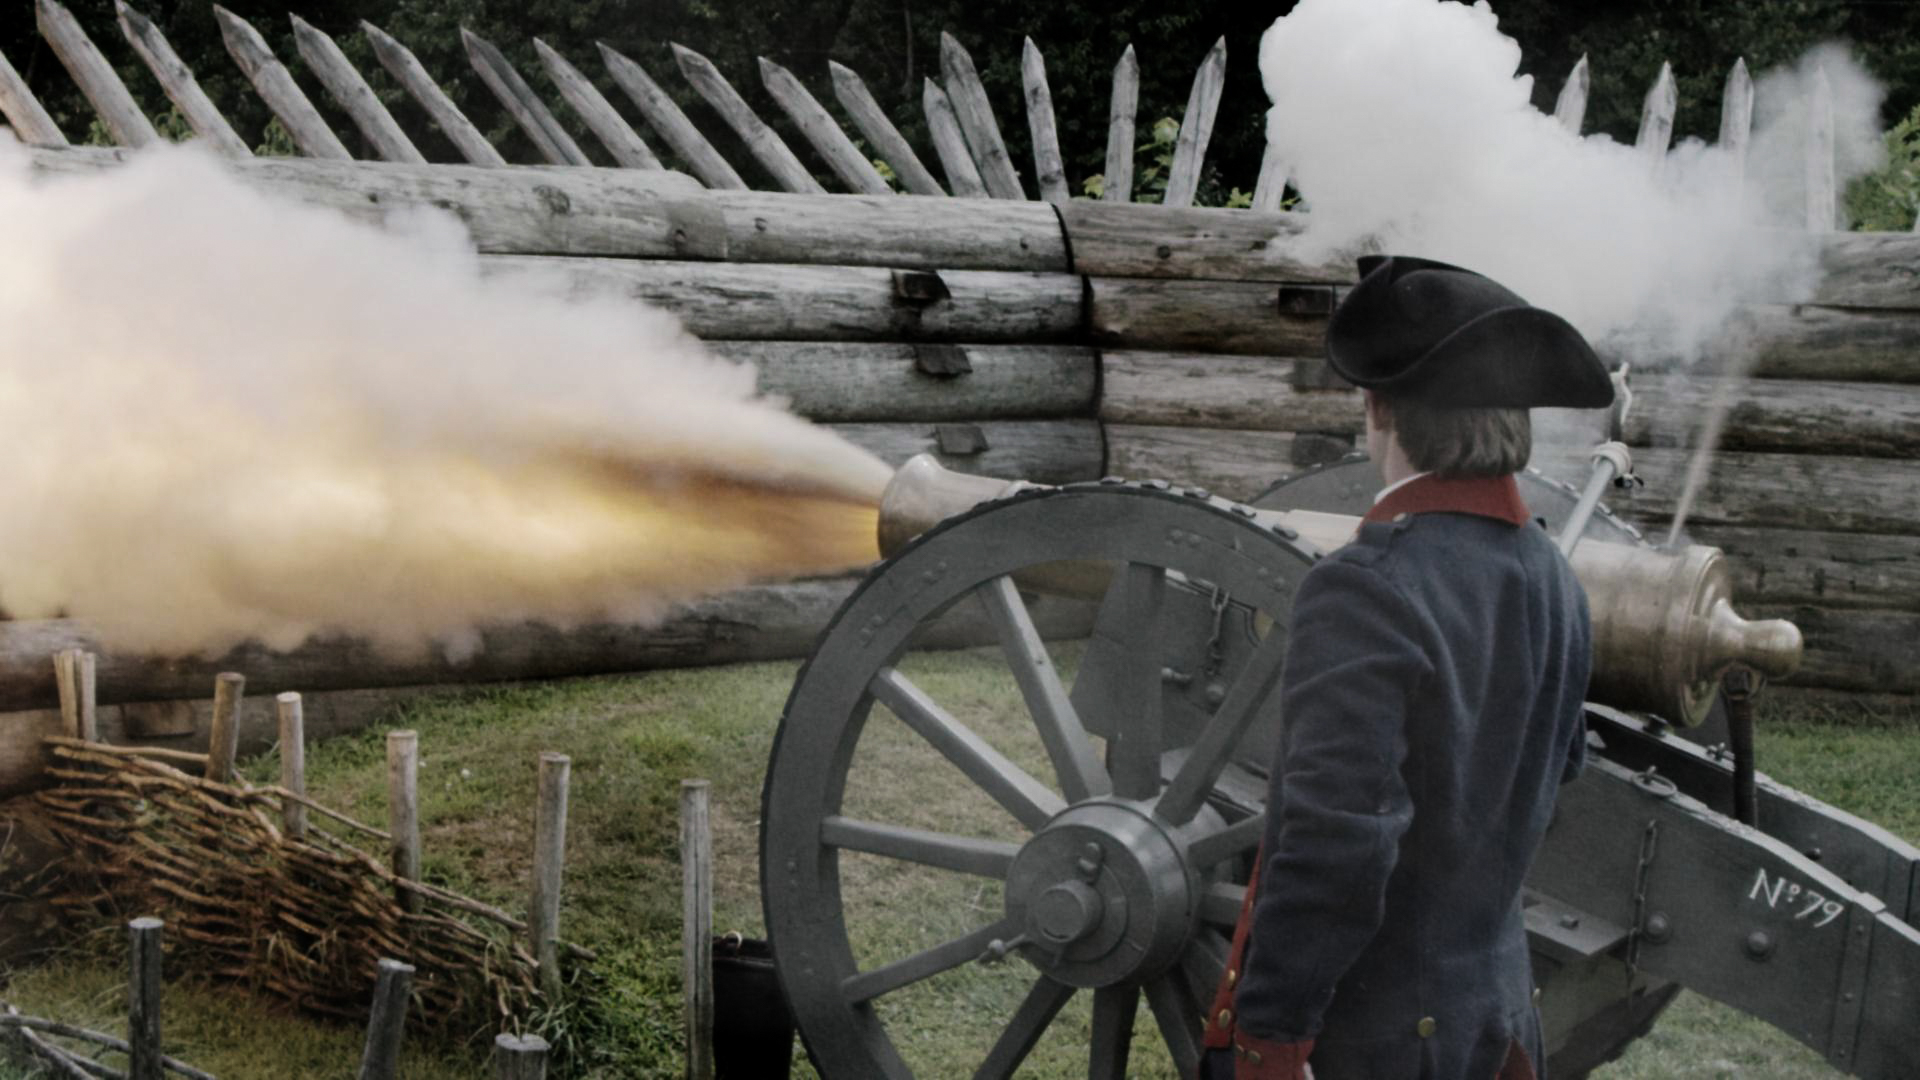 Firing of the cannon at knox headquarters